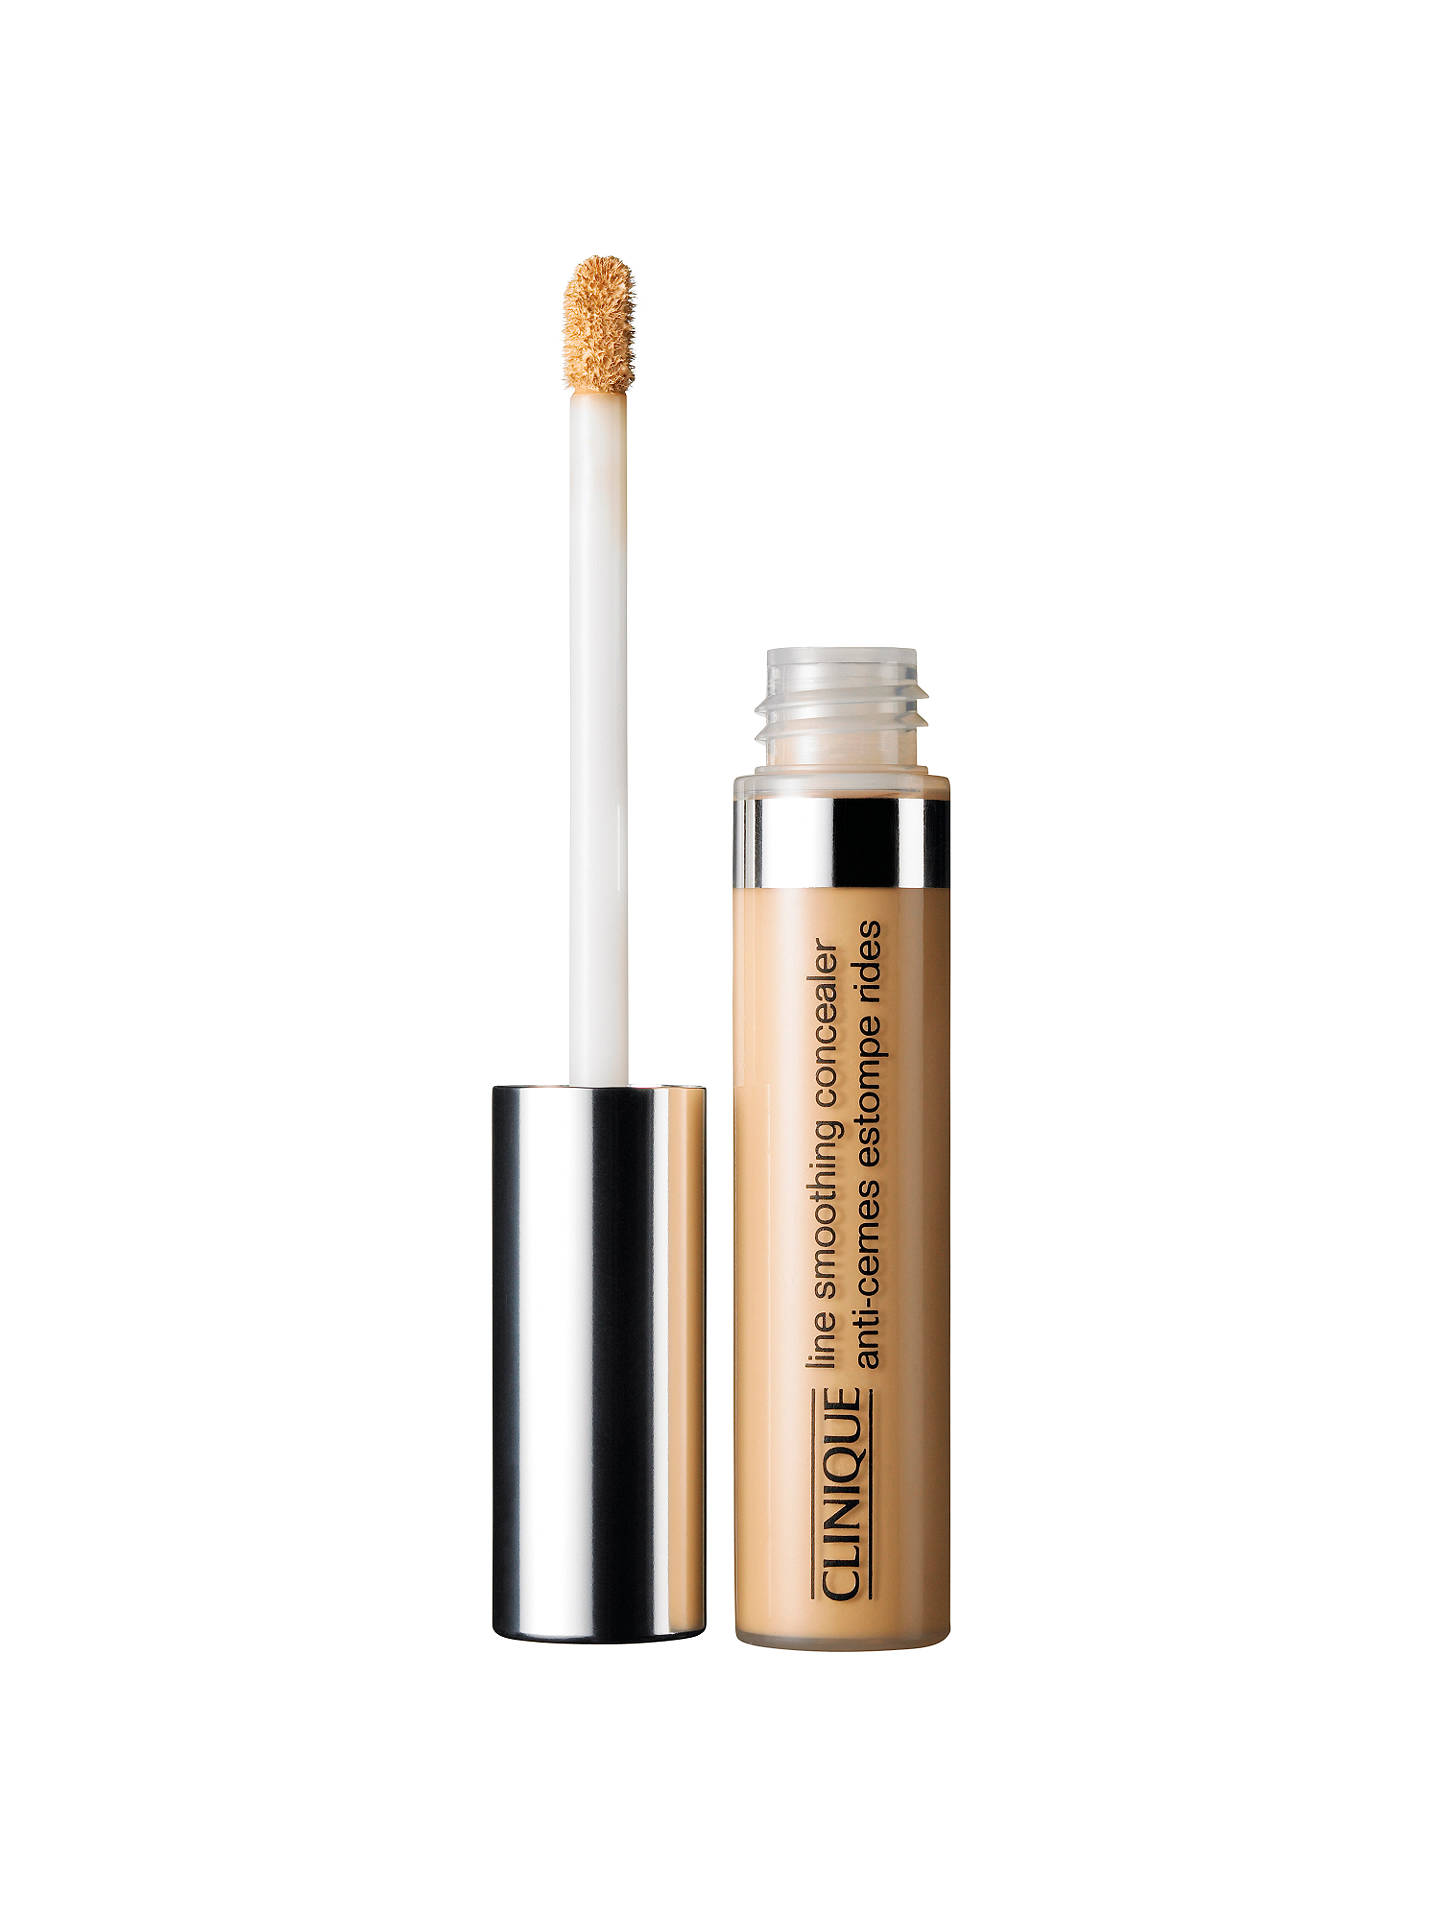 BuyClinique Line Smoothing Concealer - All Skin Types, Moderately Fair Online at johnlewis.com